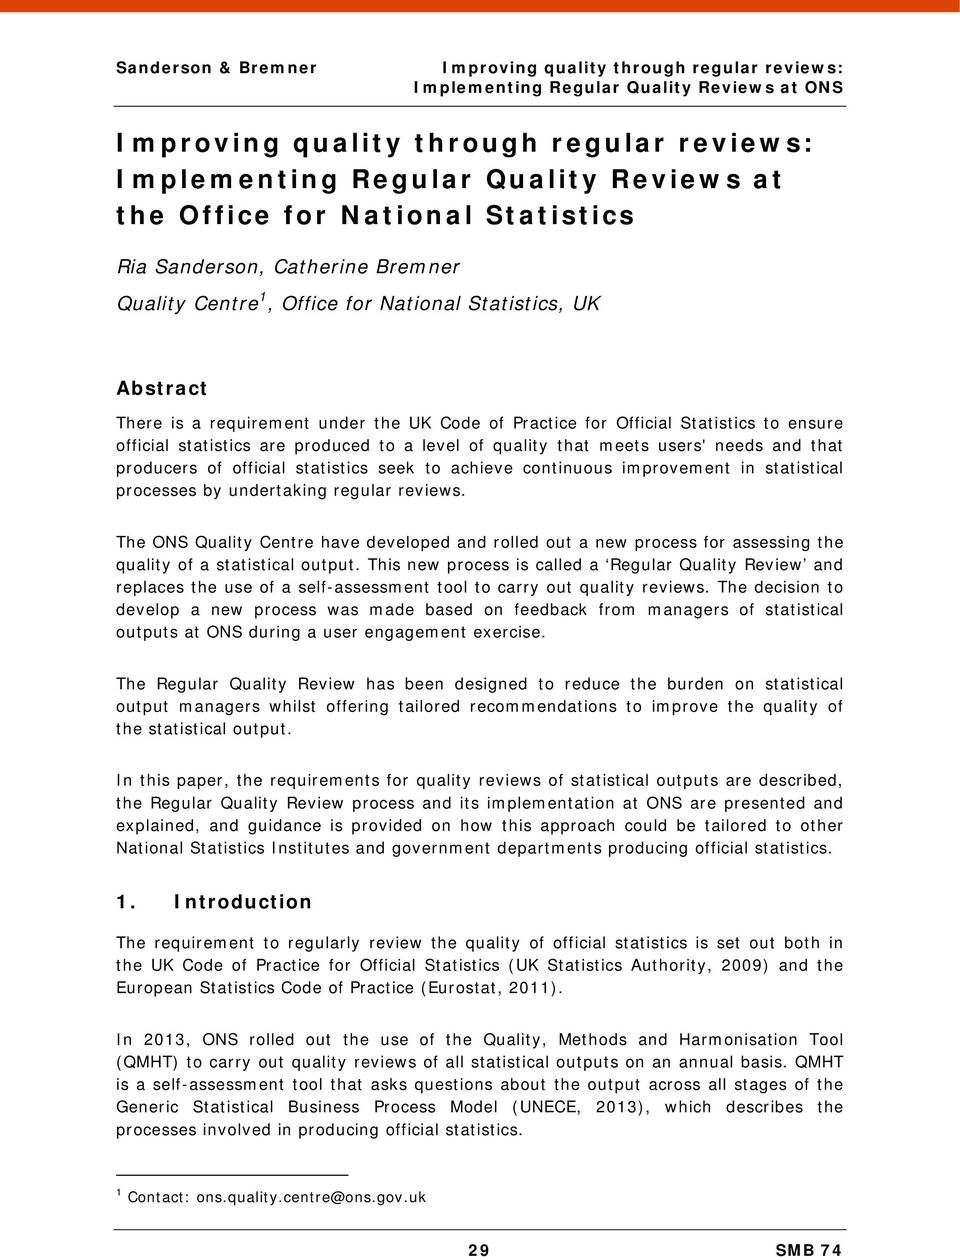 continuous improvement in statistical processes by undertaking regular reviews. The ONS Quality Centre have developed and rolled out a new process for assessing the quality of a statistical output.